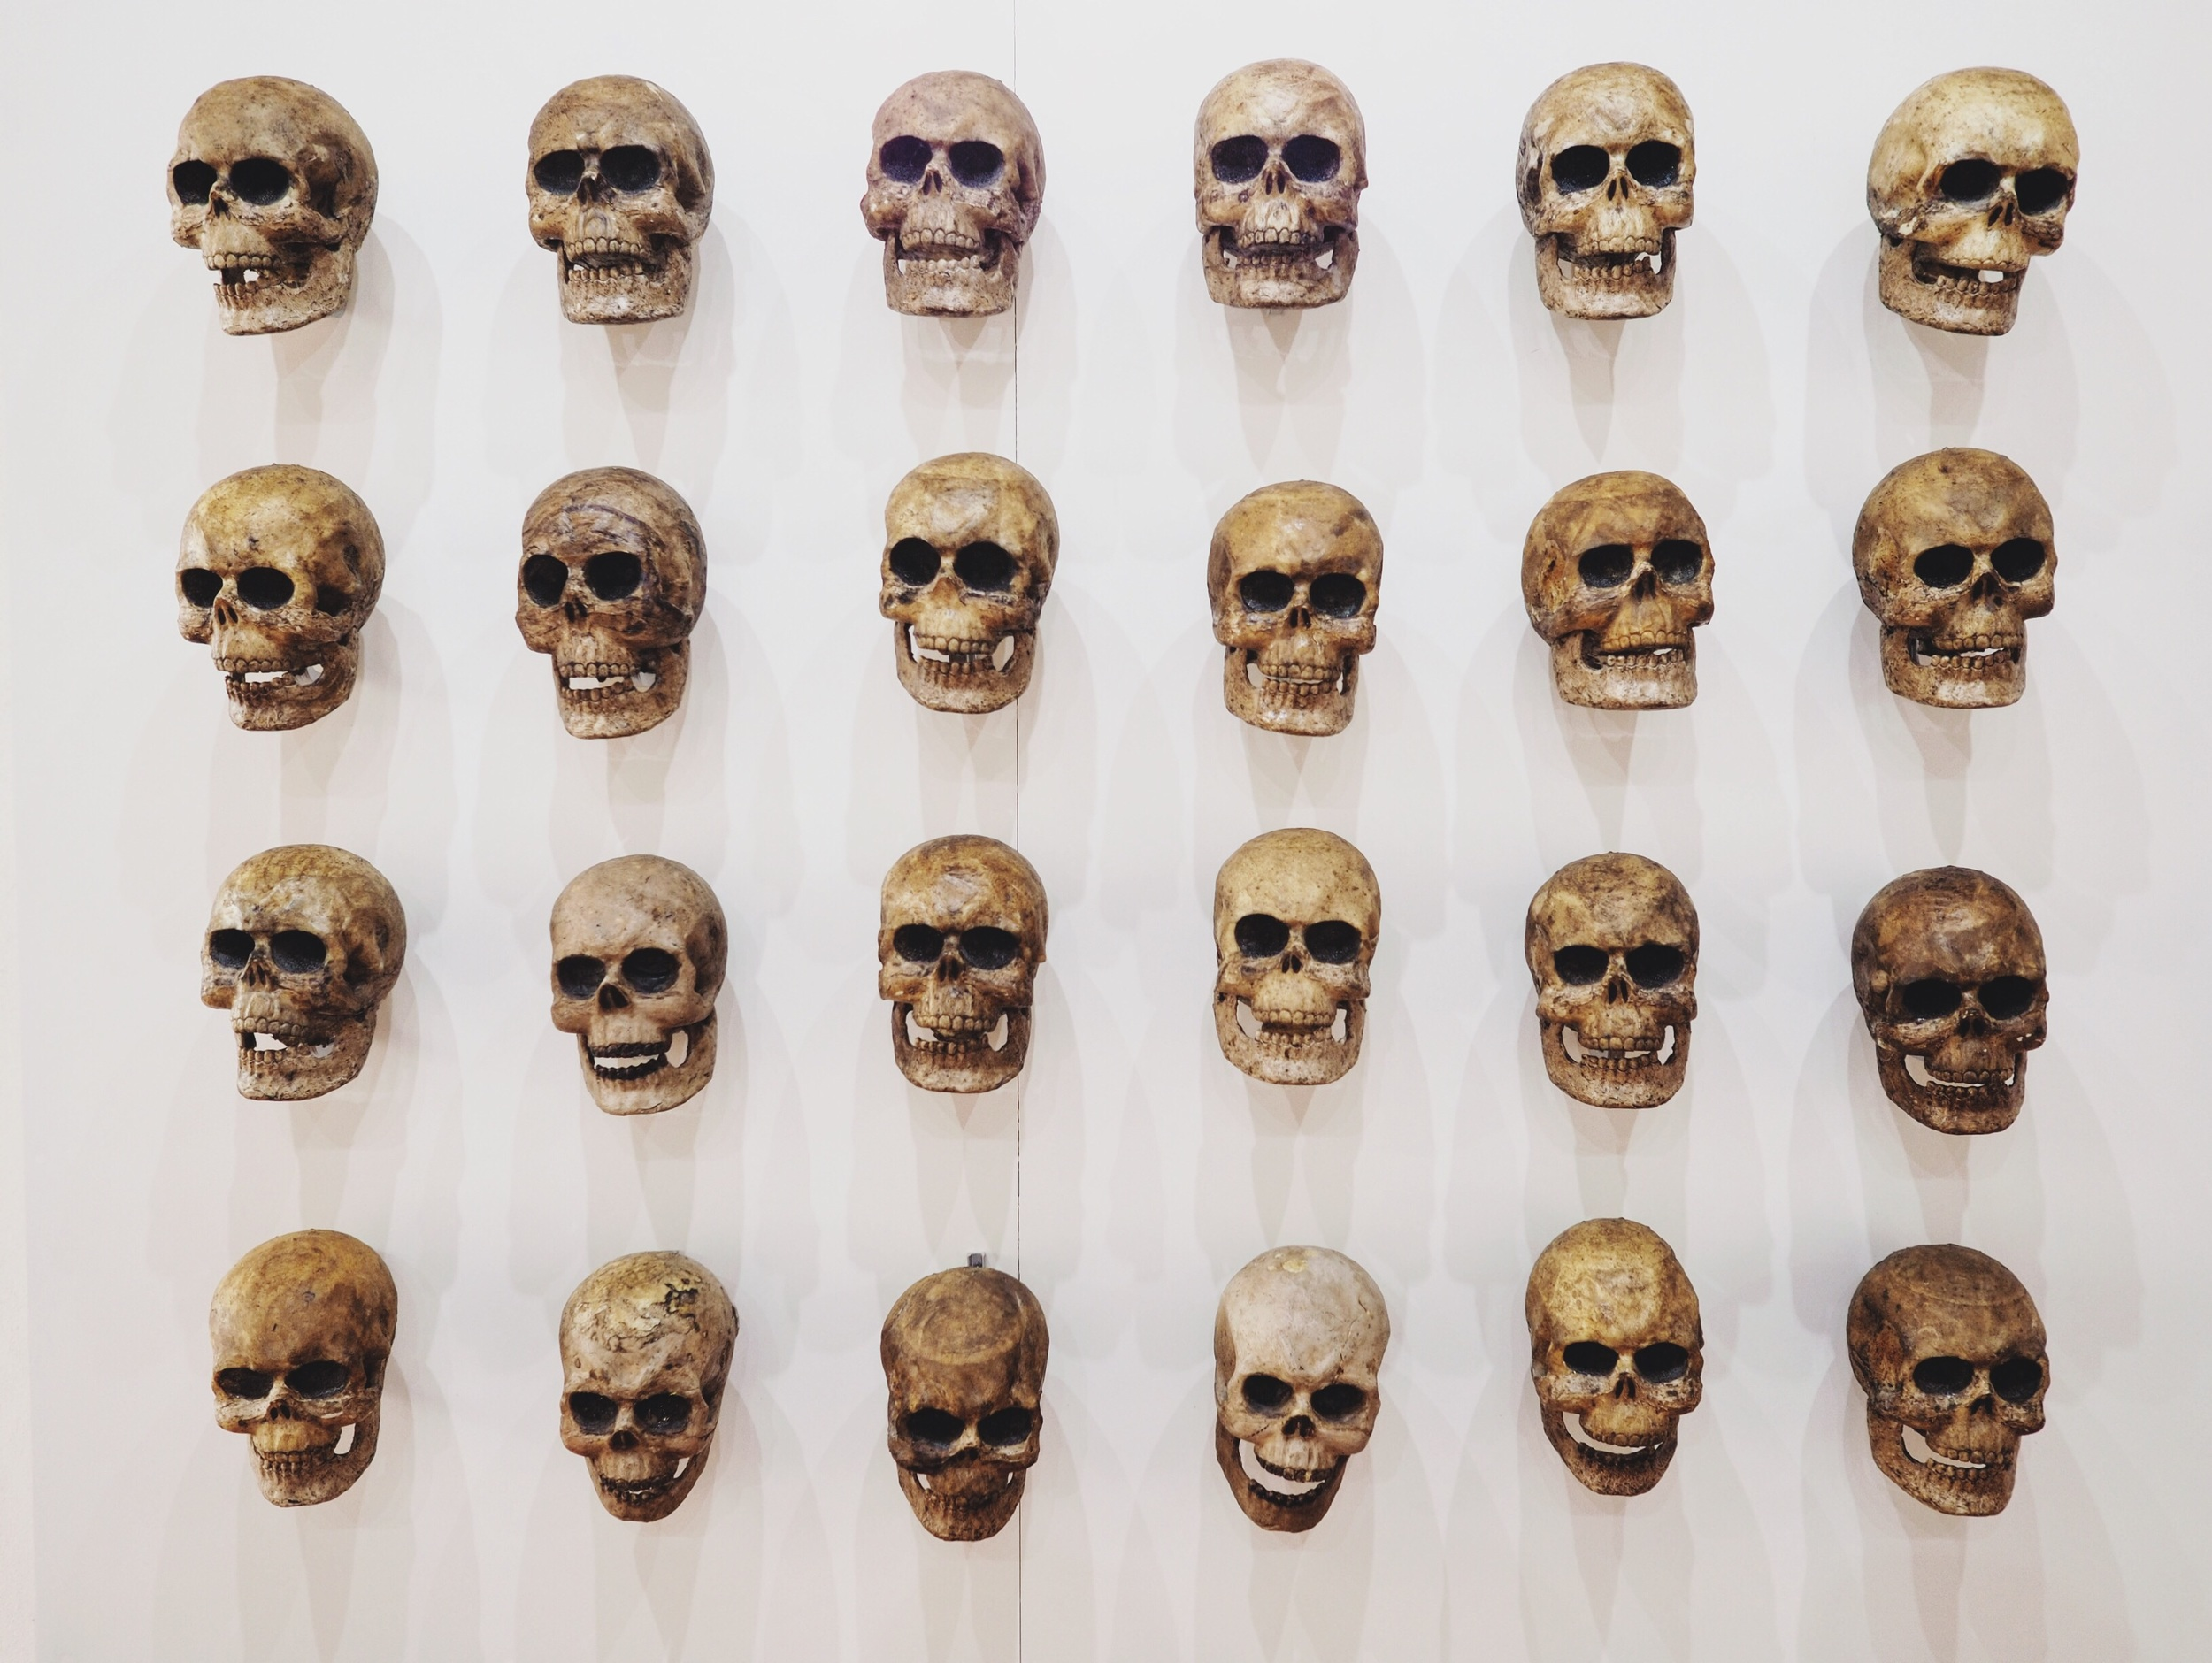 A display of fabricated skulls in the museum